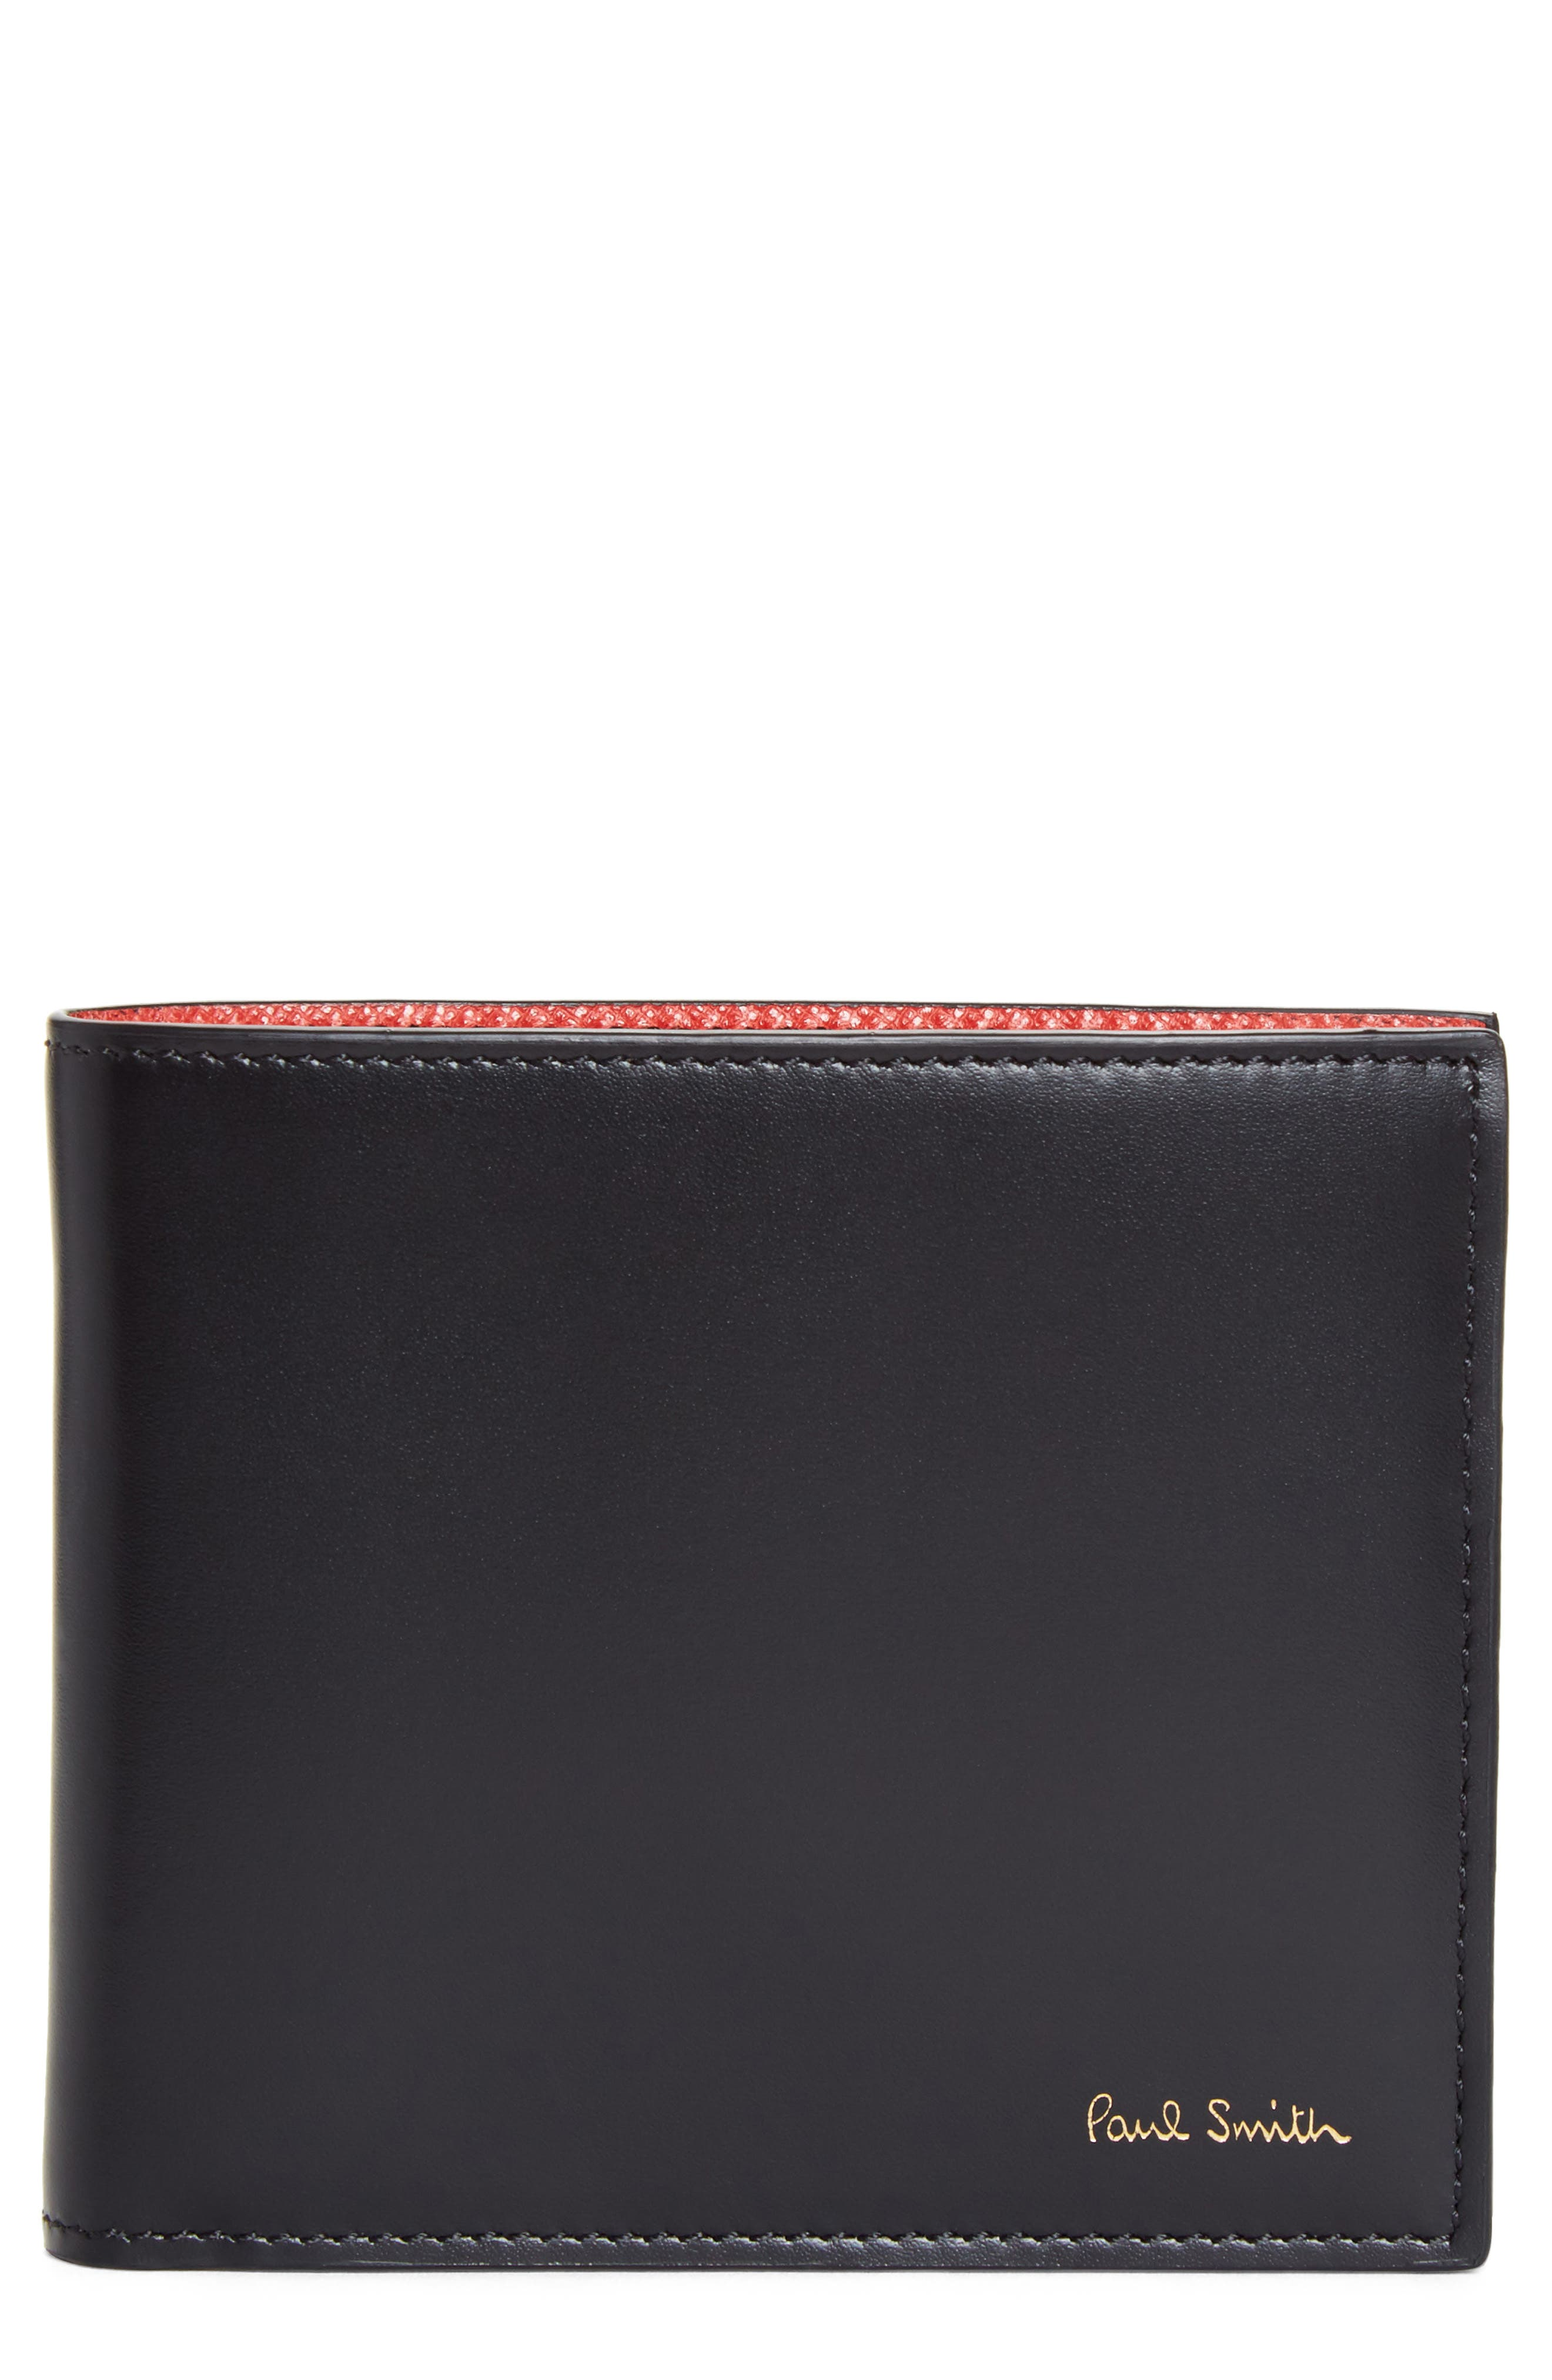 Paul Smith Leopard Print Billfold Wallet